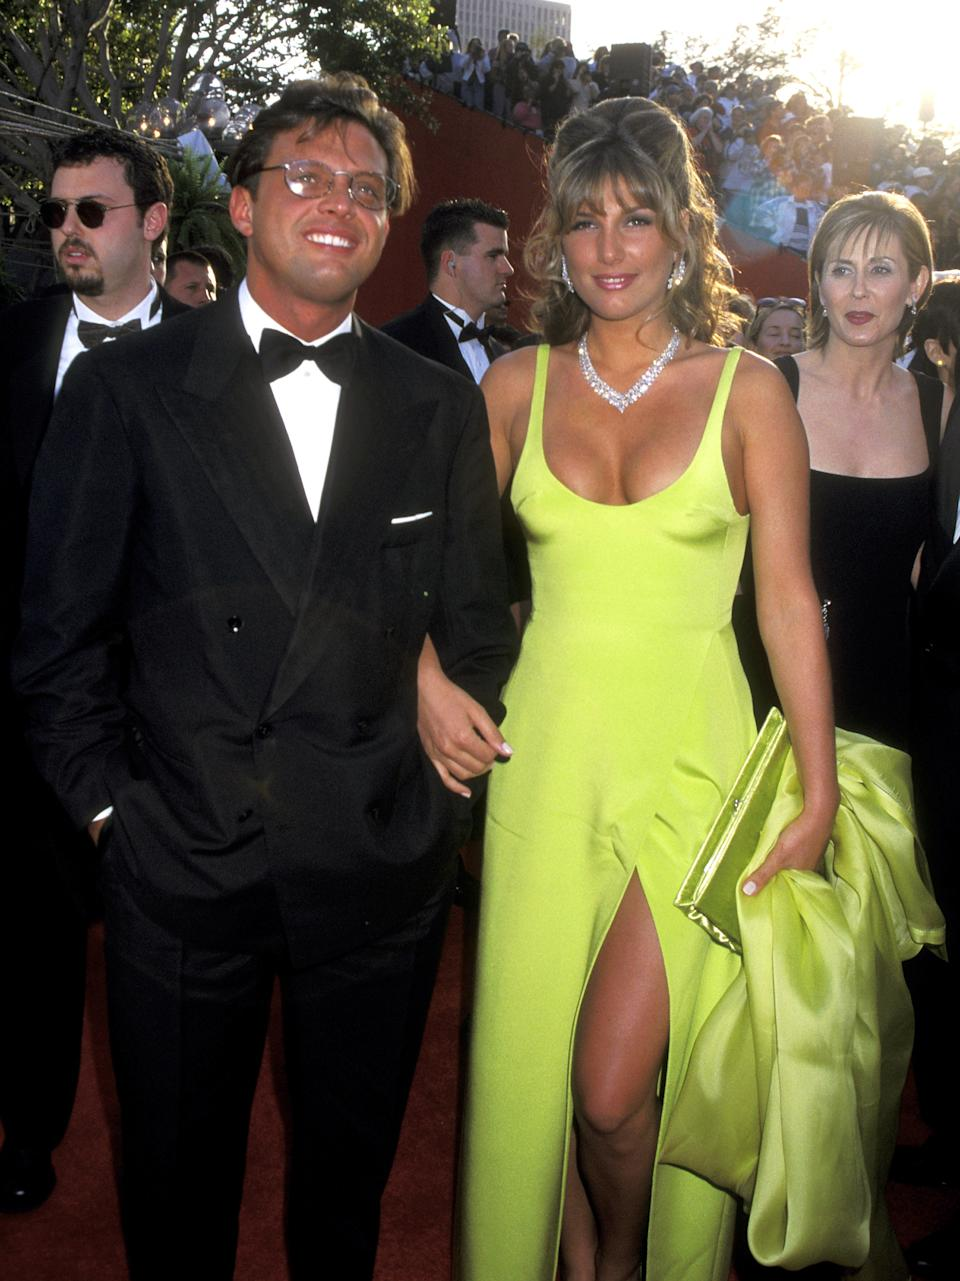 LOS ANGELES - MARCH 25: Latin Singer Luis Miguel and Actress Daisy Fuentes attend the 68th Annual Academy Awards on March 25, 1996 at Dorothy Chandler Pavilion in Los Angeles, California. (Photo by Ron Galella, Ltd / Ron Galella Collection via Getty Images)